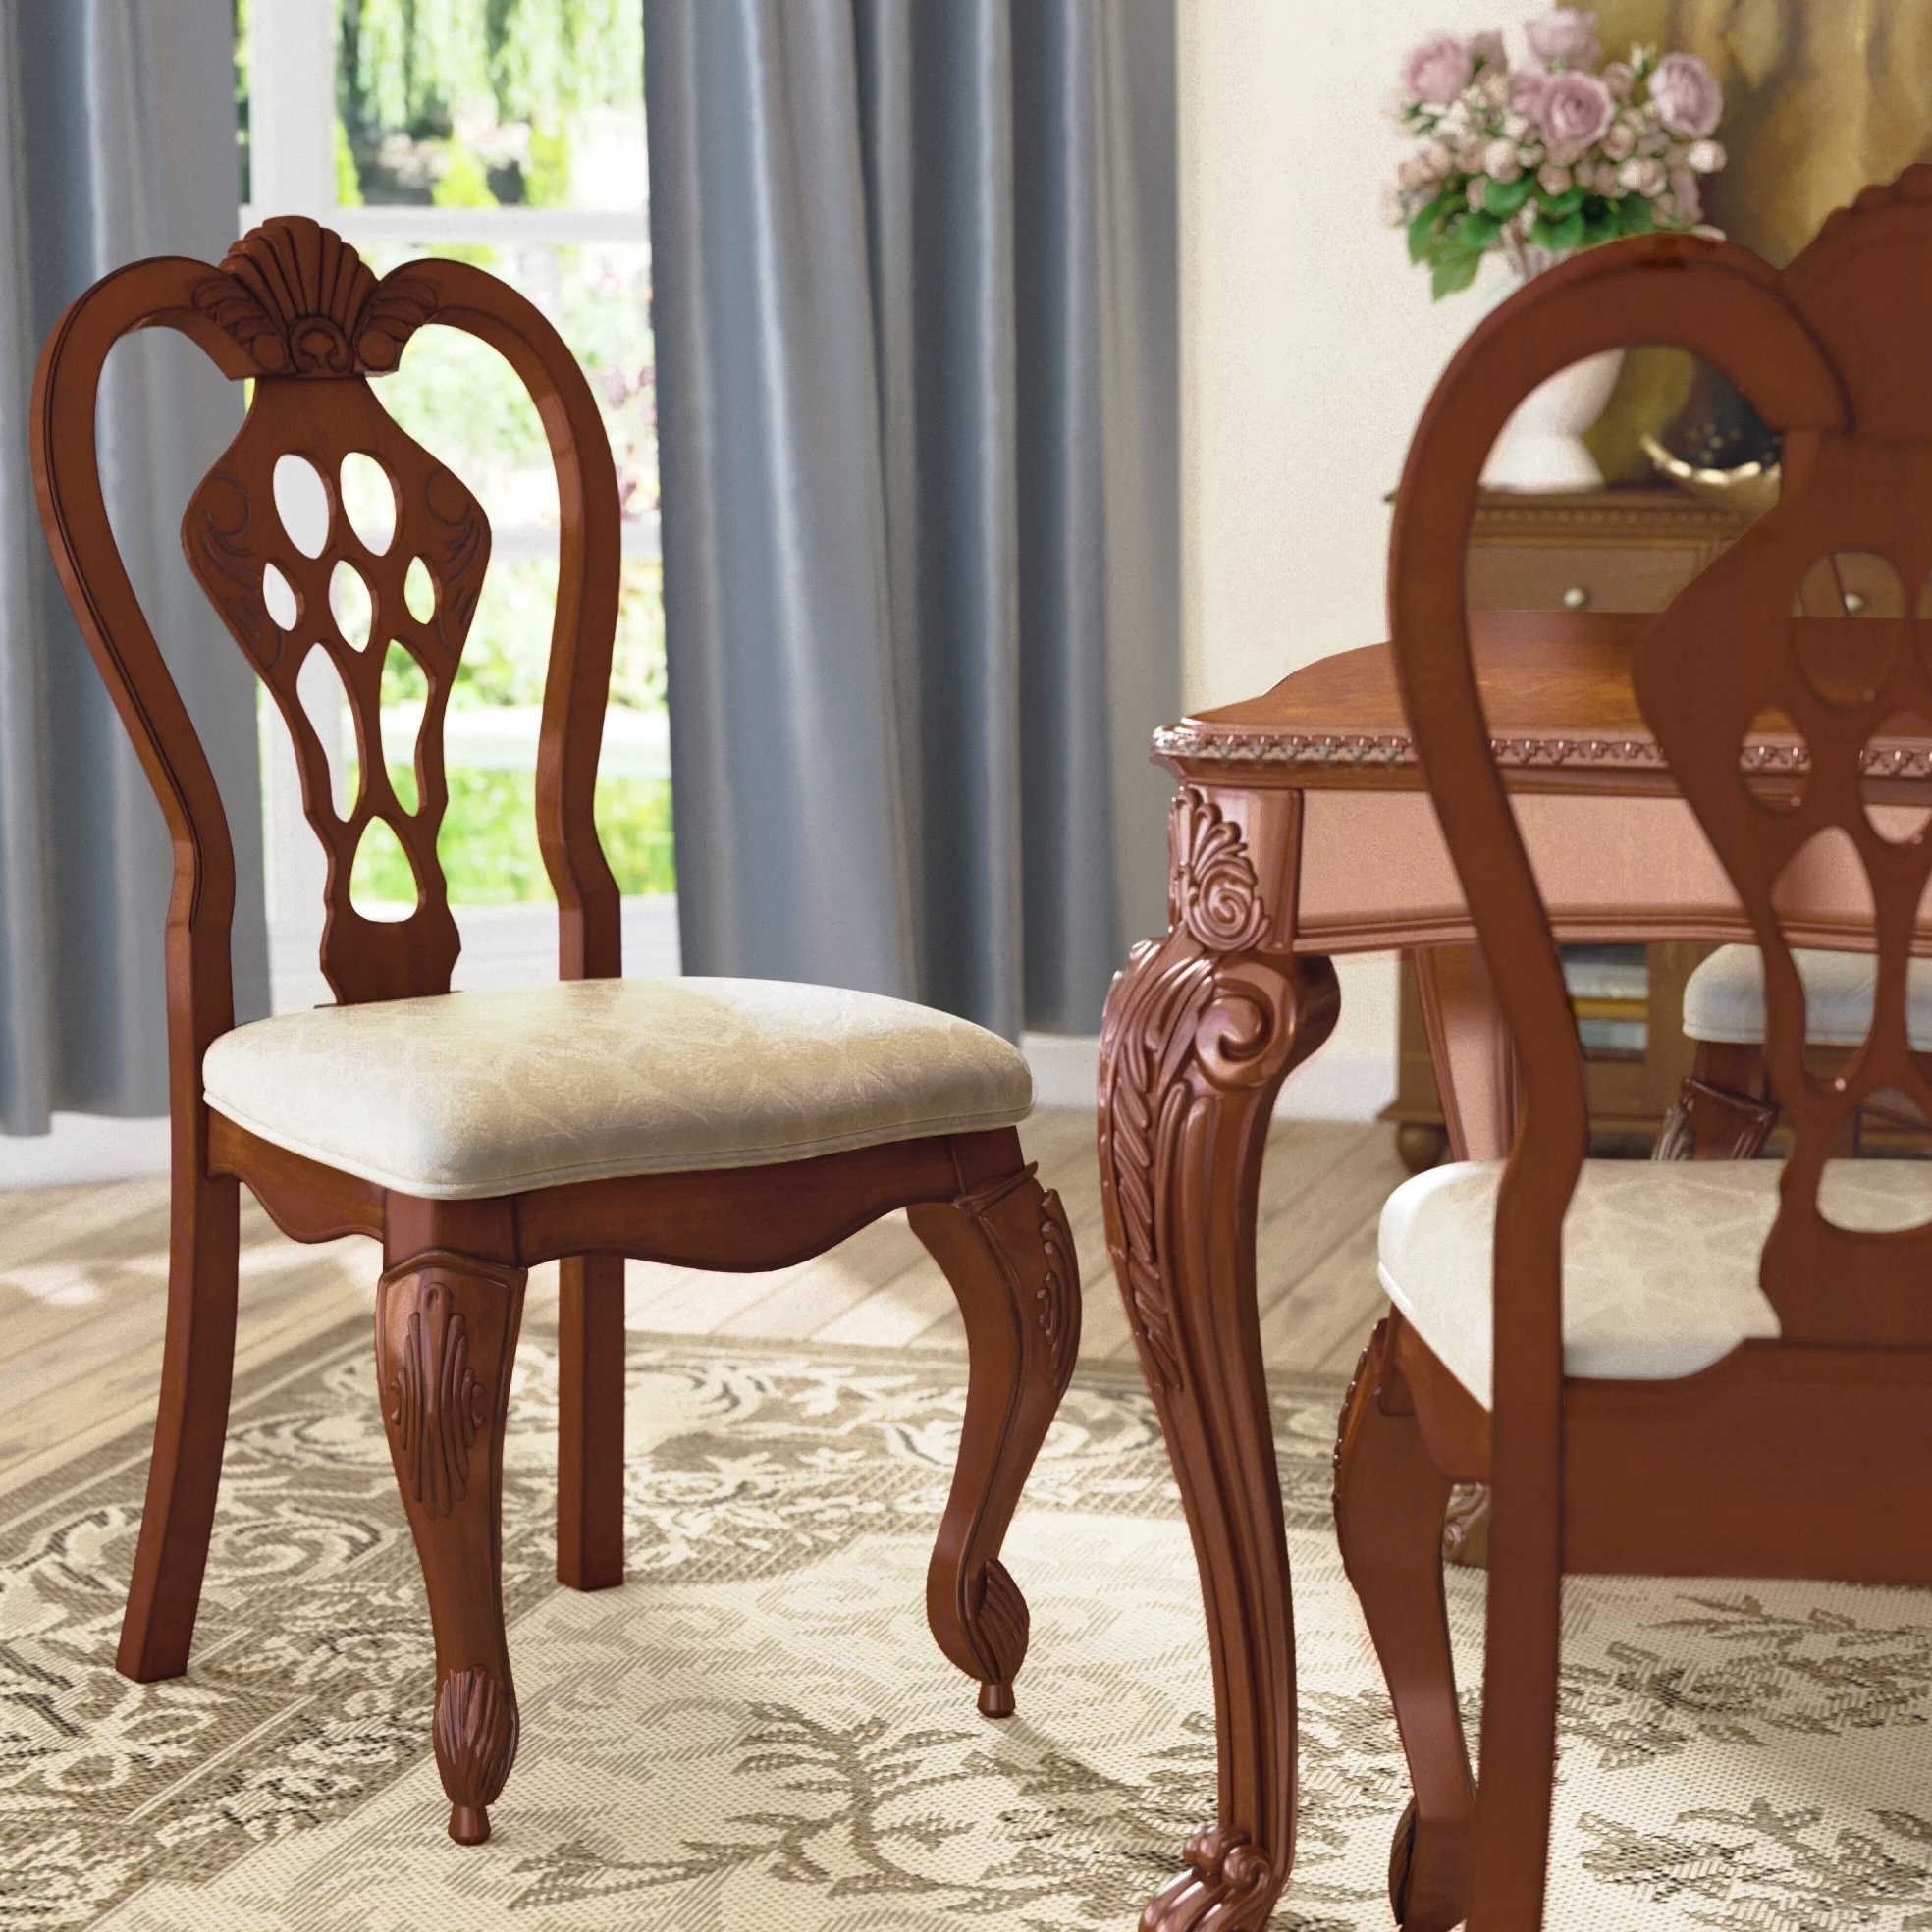 Astoria Grand Cavalier 5 Piece Extendable Dining Set & Reviews | Wayfair With Latest Jaxon 5 Piece Extension Counter Sets With Wood Stools (Image 2 of 20)